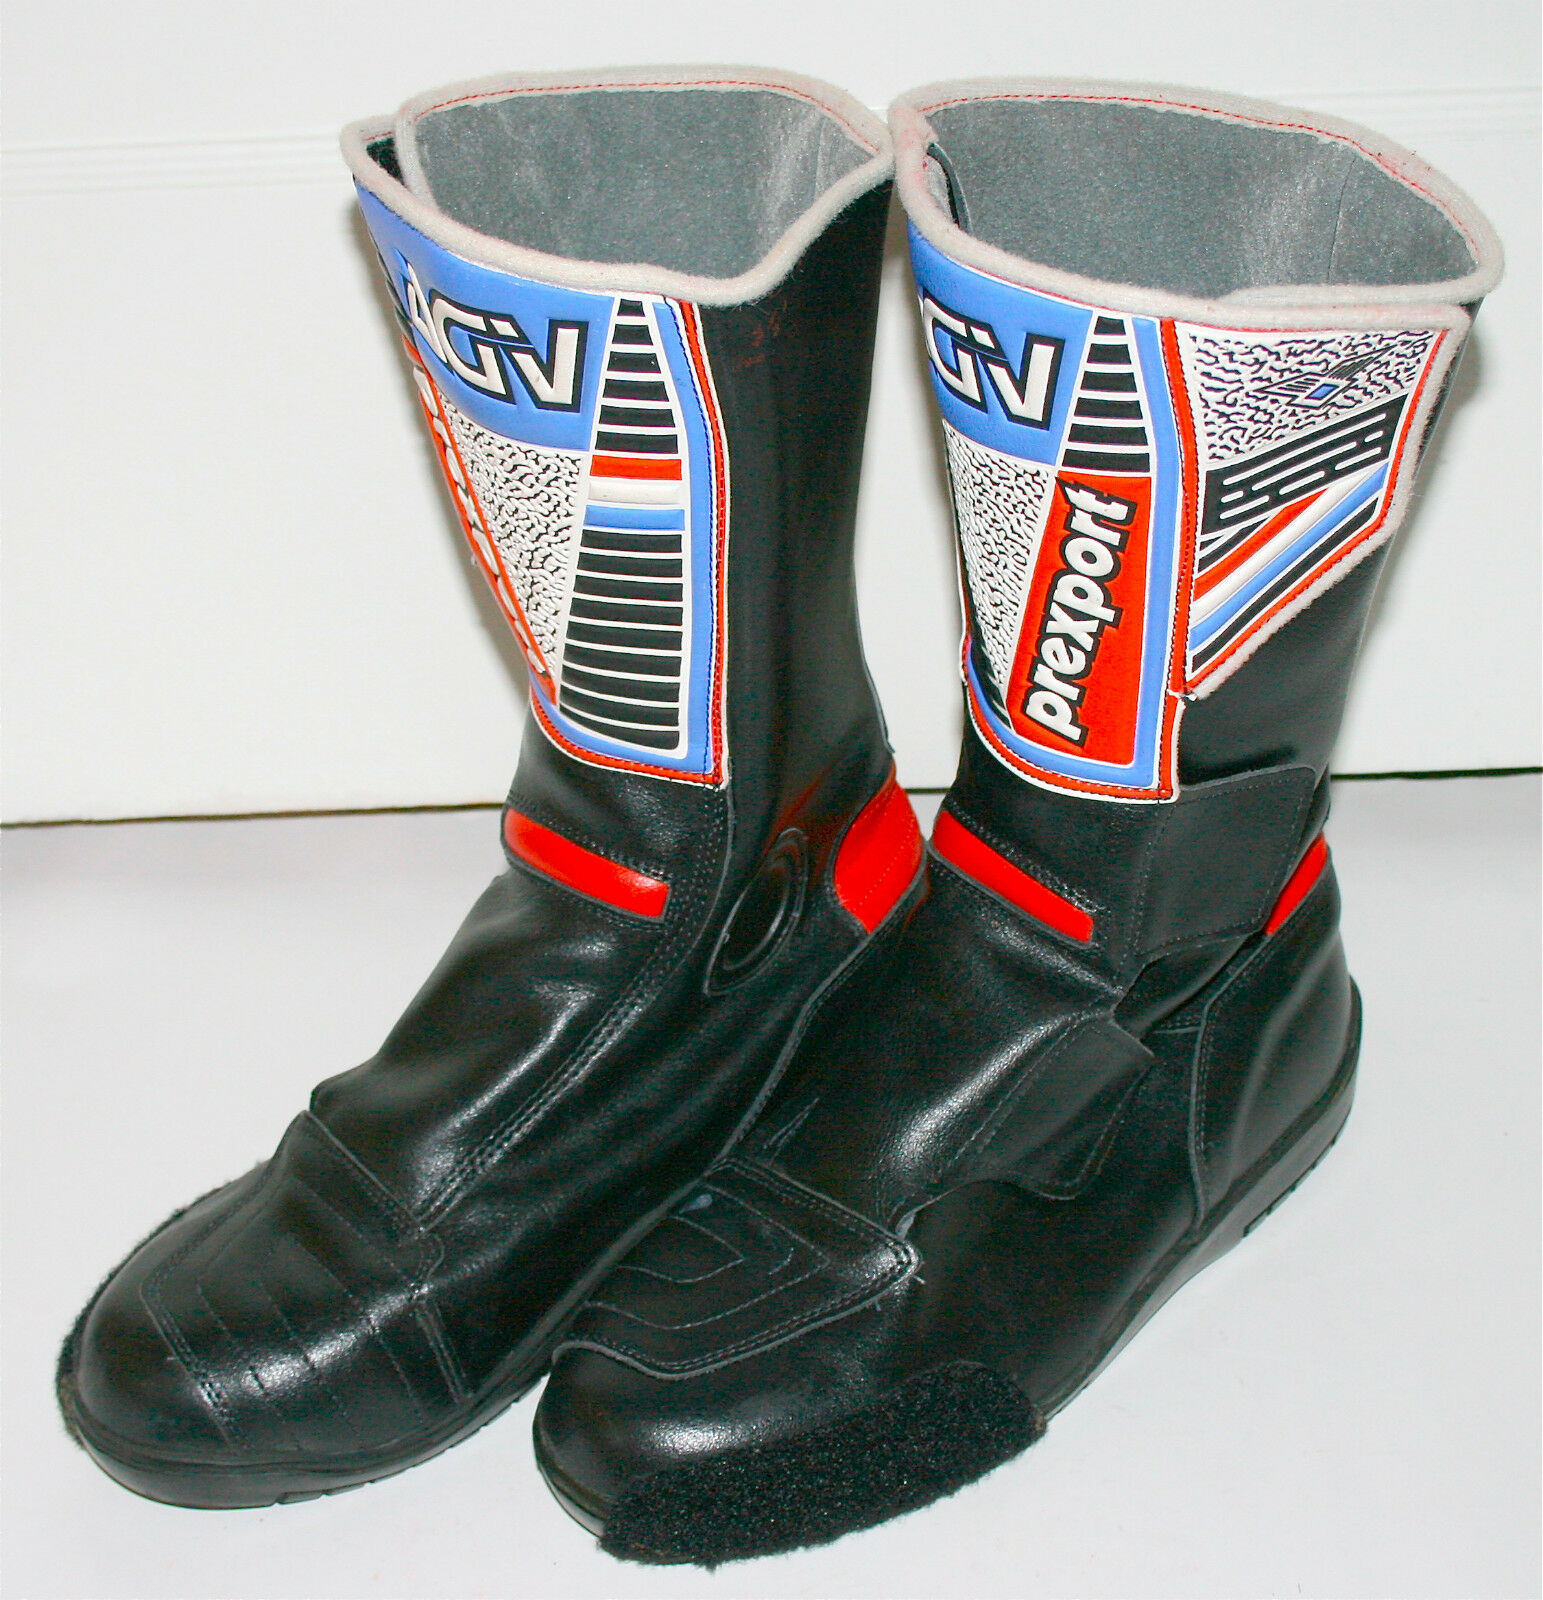 AGV PREXPORT Motorcycle Black Boots  Size 8.5  9  Made in